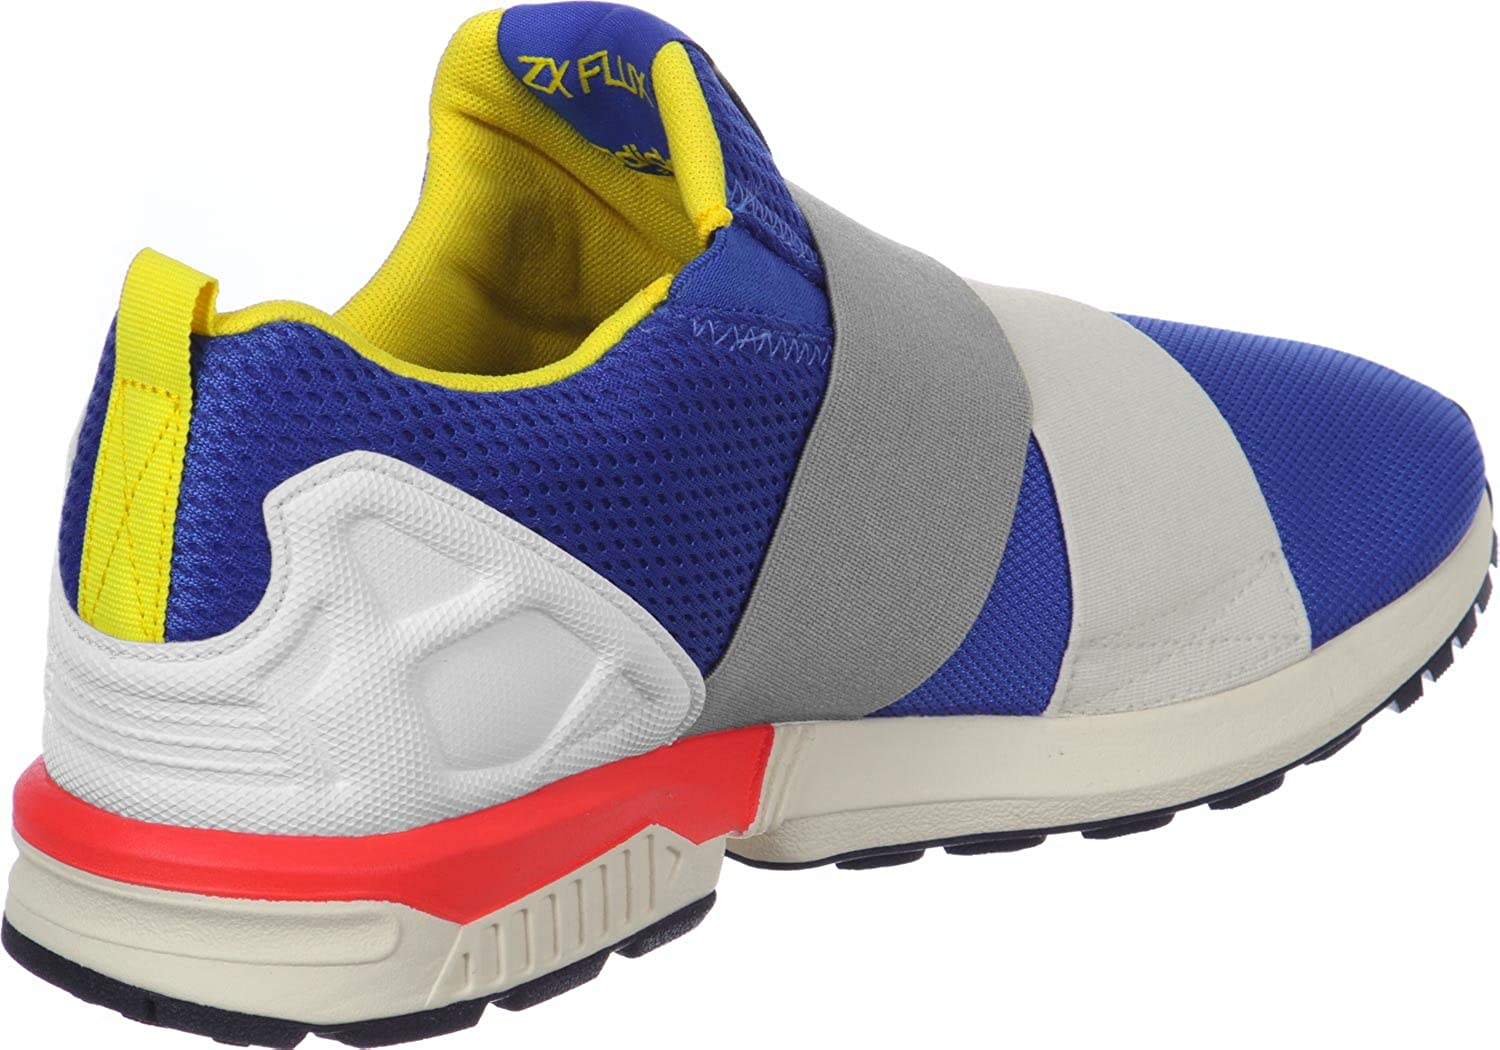 adidas Women's ZX Flux Slip On Trainers Blue Ftwr White-Yellow-Blue:  Amazon.co.uk: Shoes & Bags